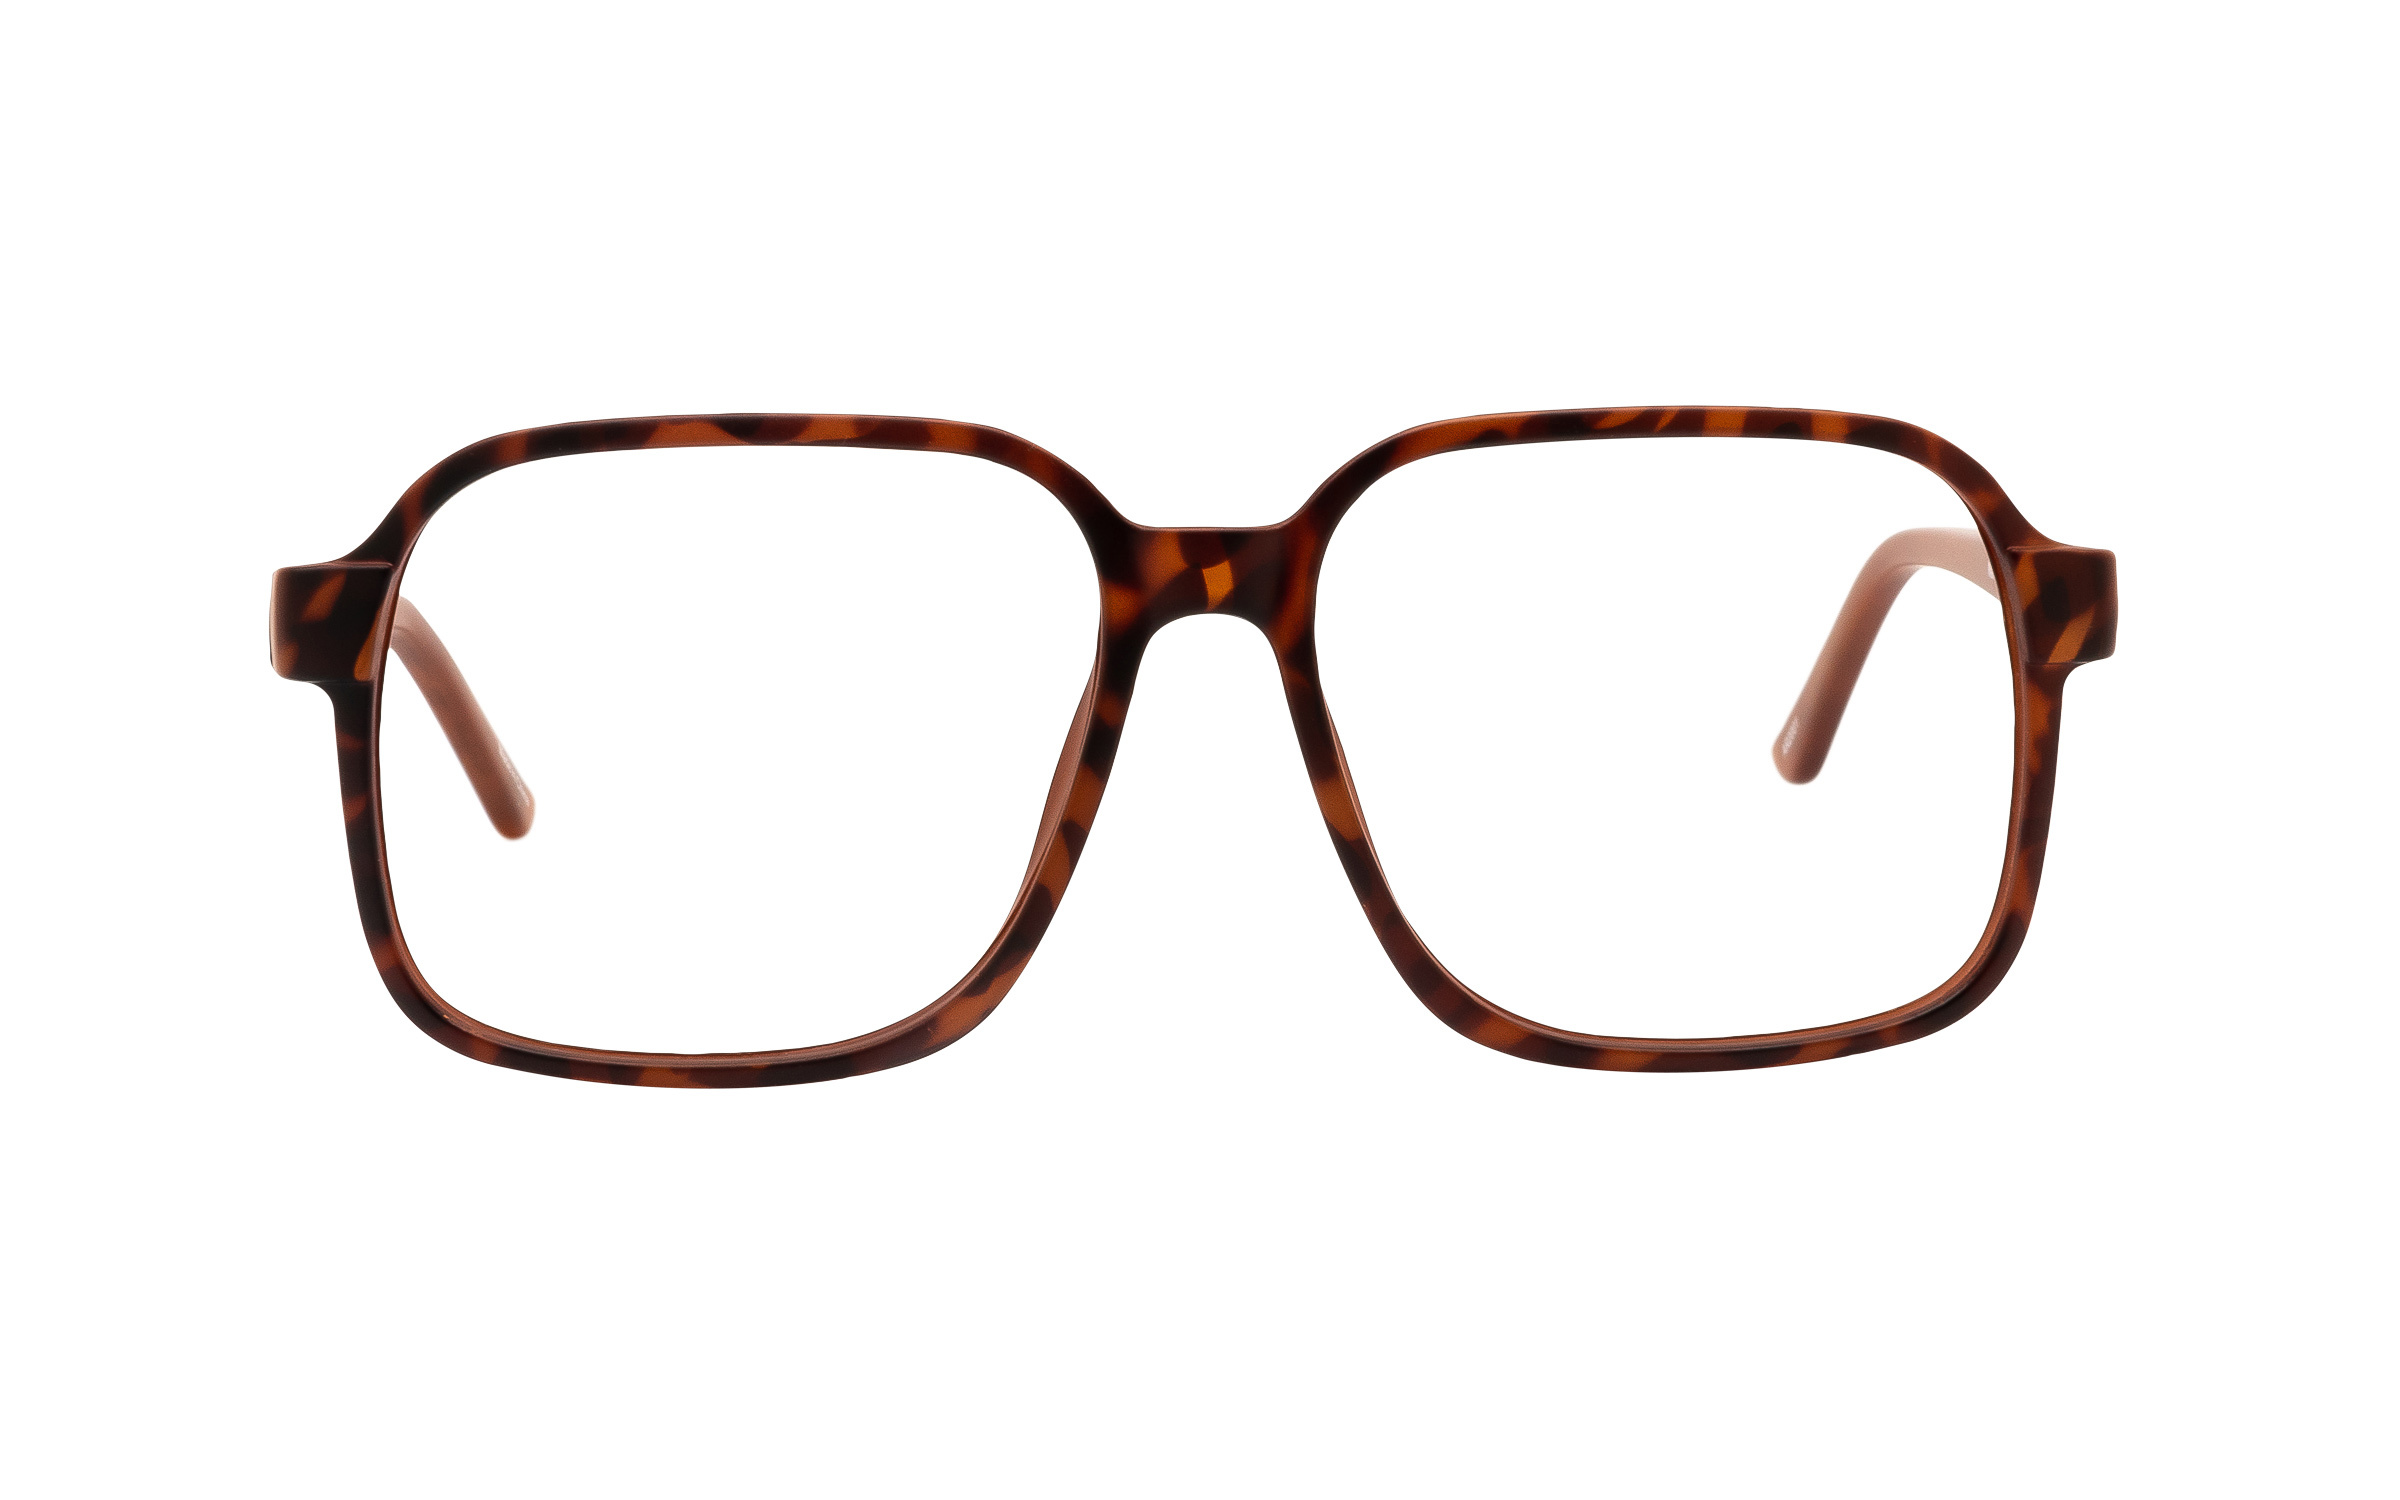 http://www.coastal.com/ - Clearly Basics Mahone Bay CLS052 C02 (54) Eyeglasses and Frame in Havana Tortoise – Online Coastal